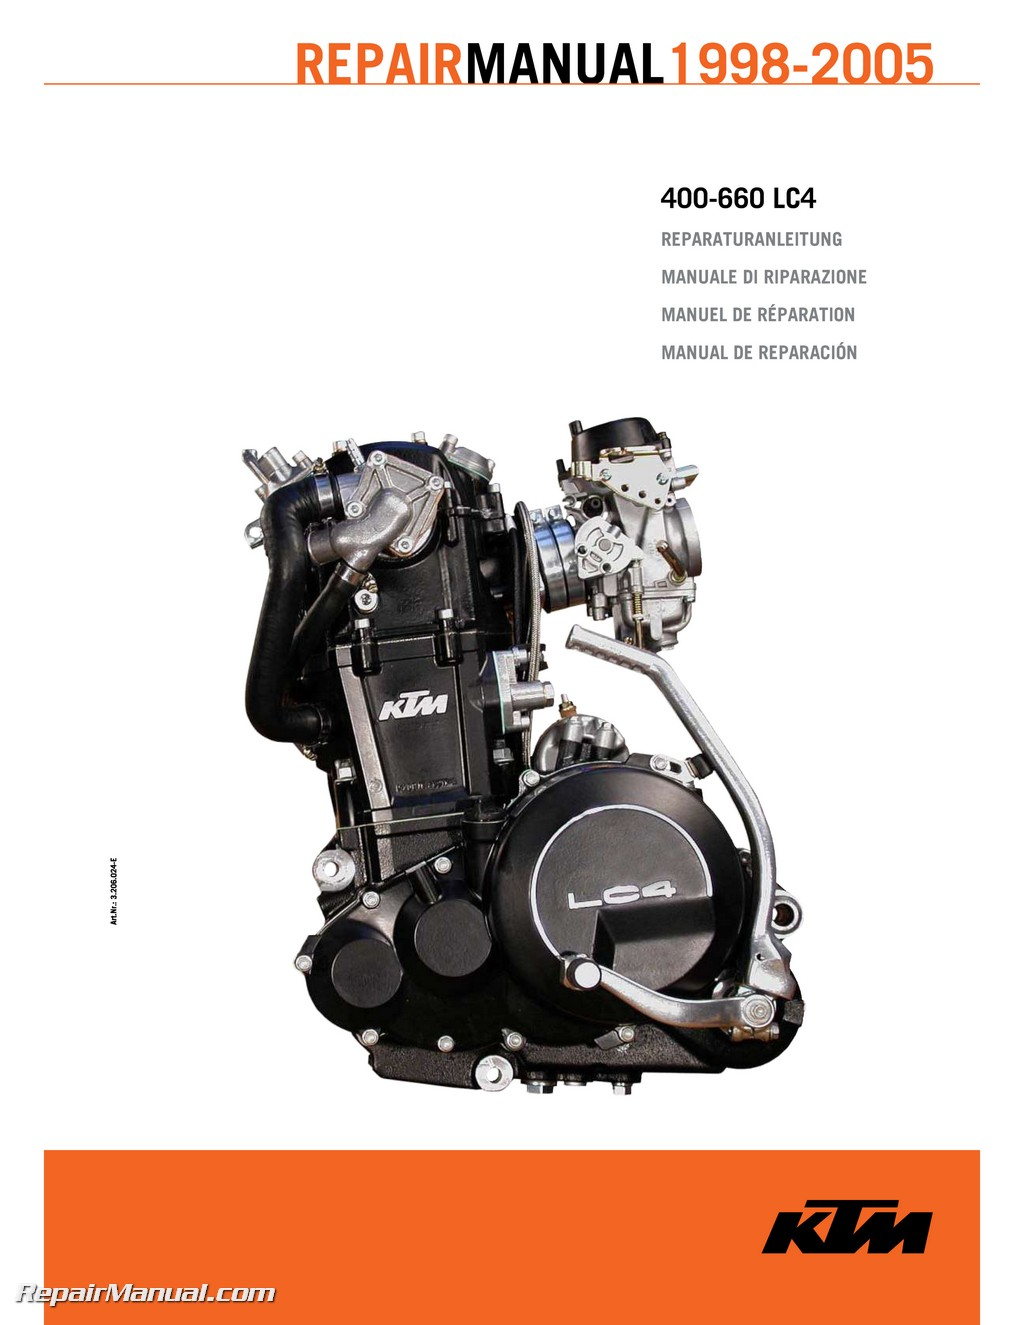 1998 2005 ktm 400 660 lc4 paper engine repair manual automobile workshop manual automobile workshop manual pdf